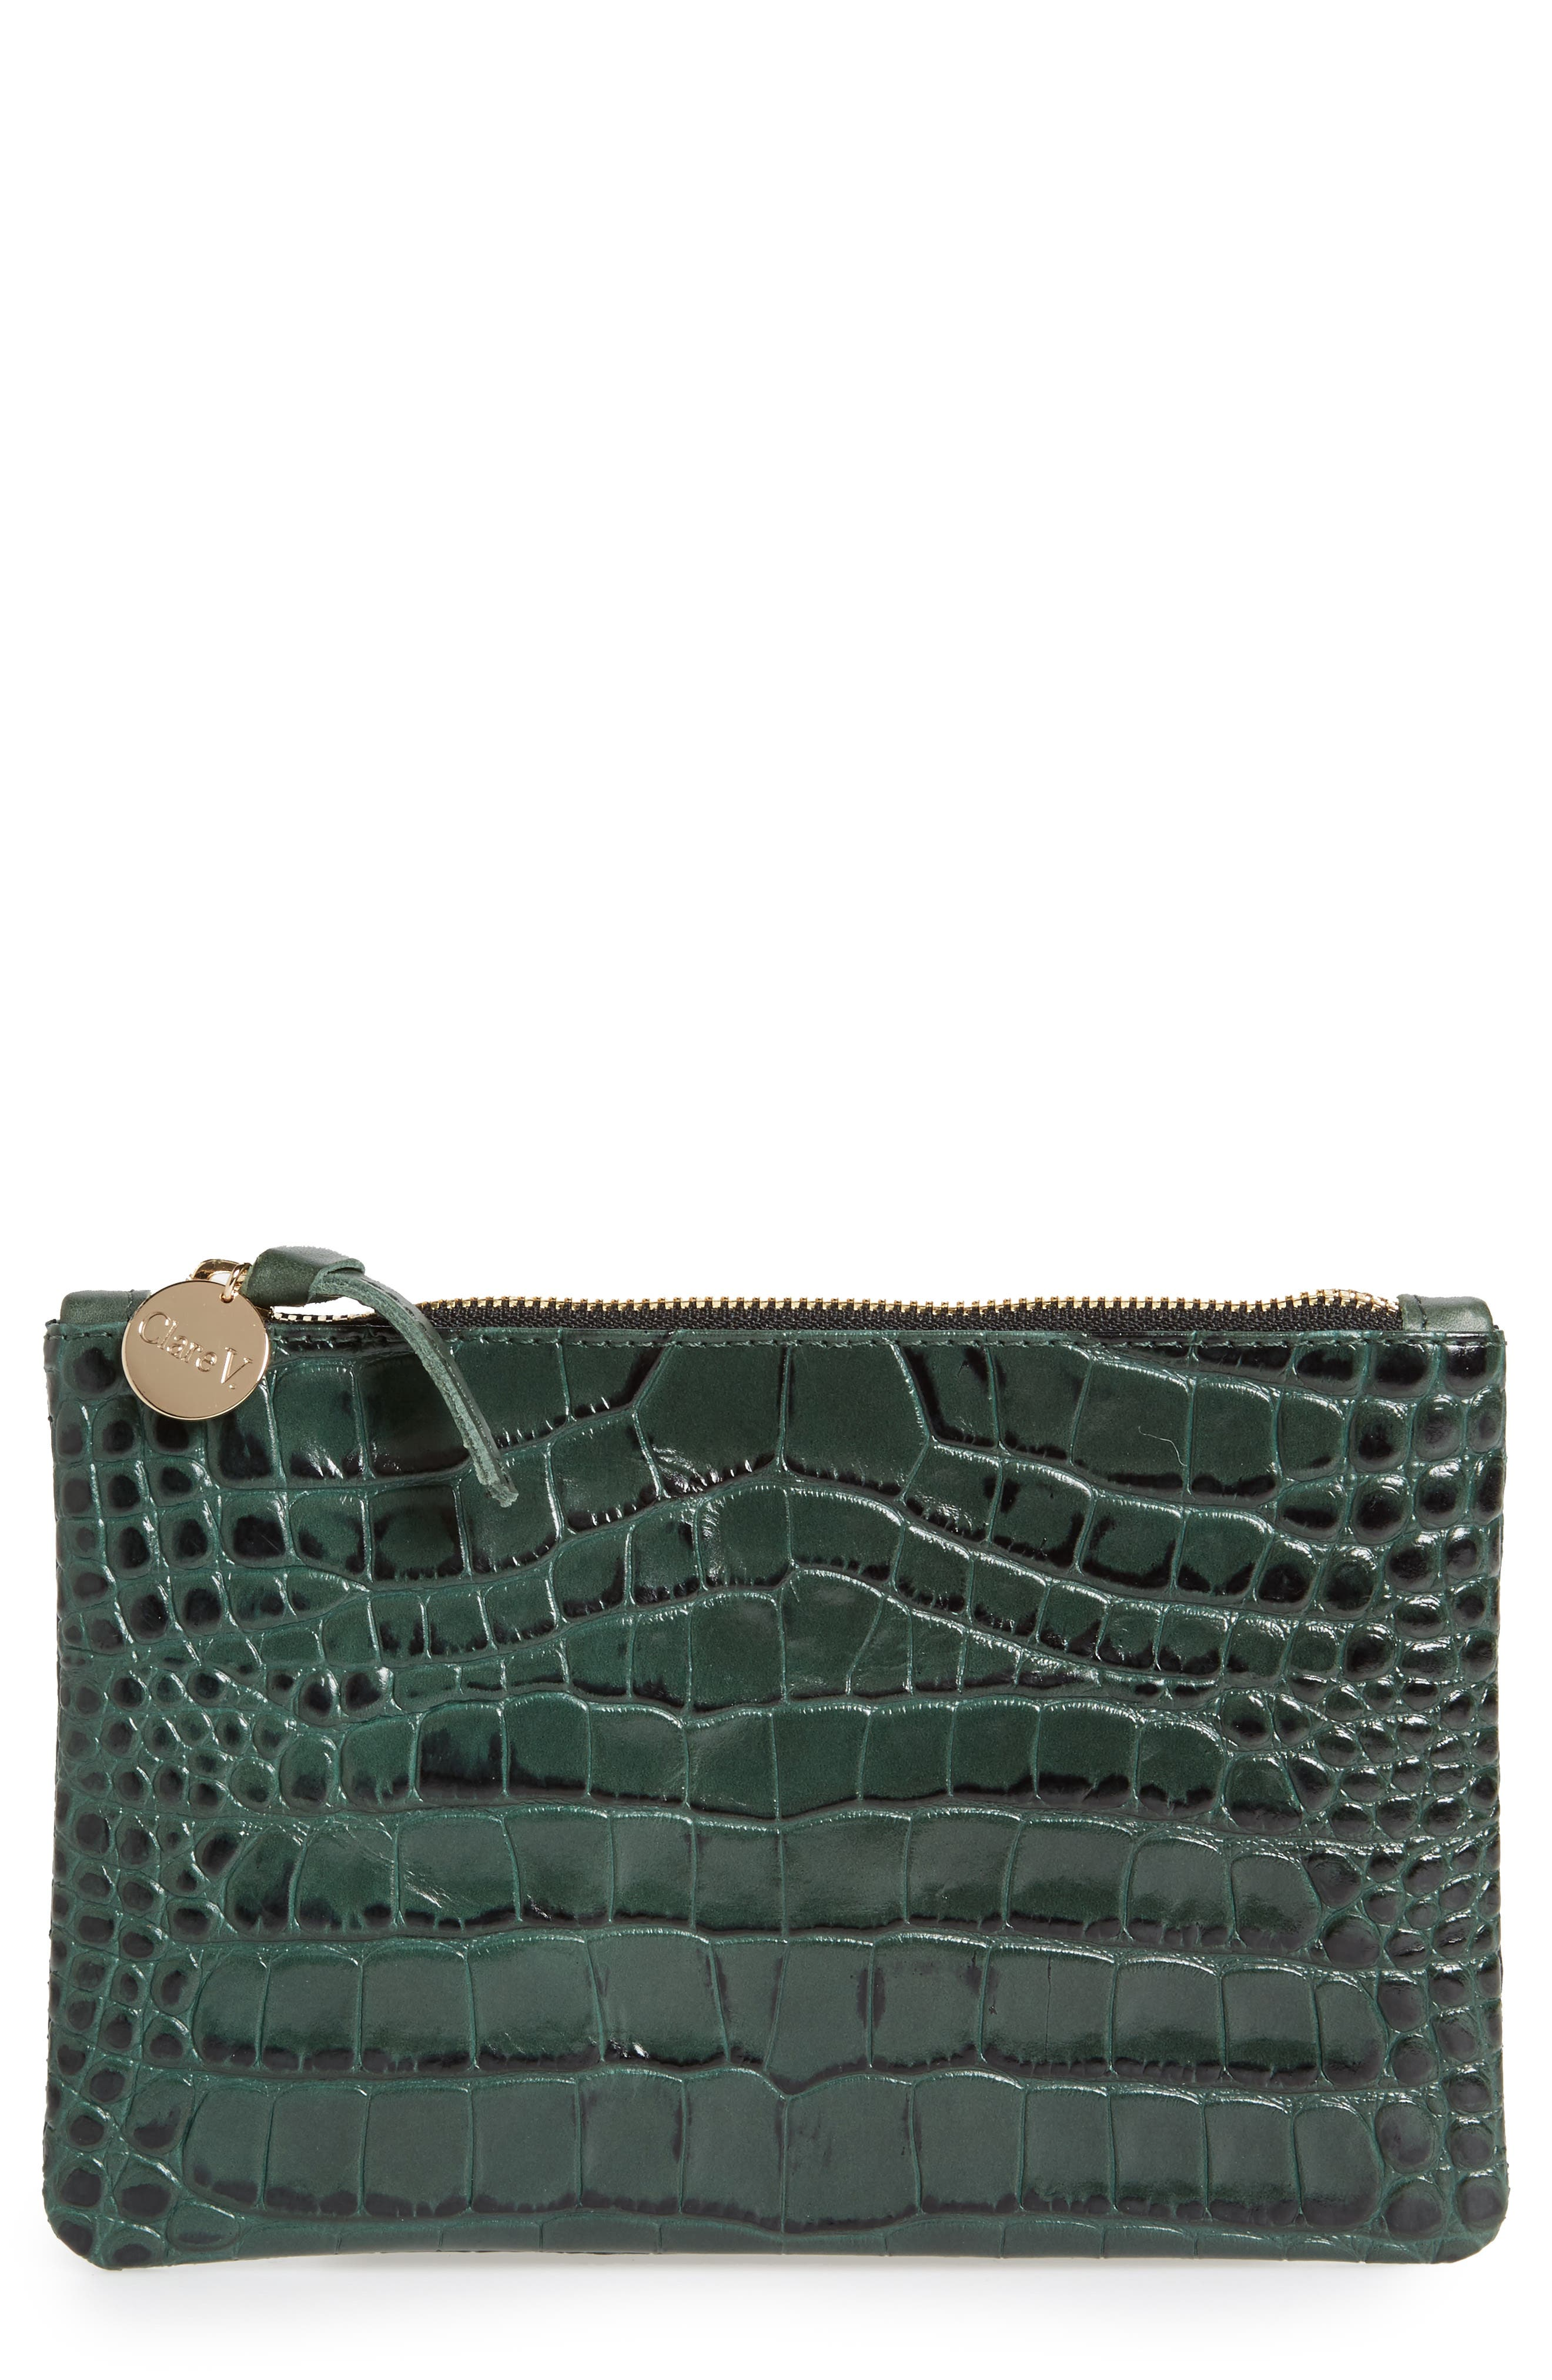 Clare V. Croc Embossed Leather Clutch